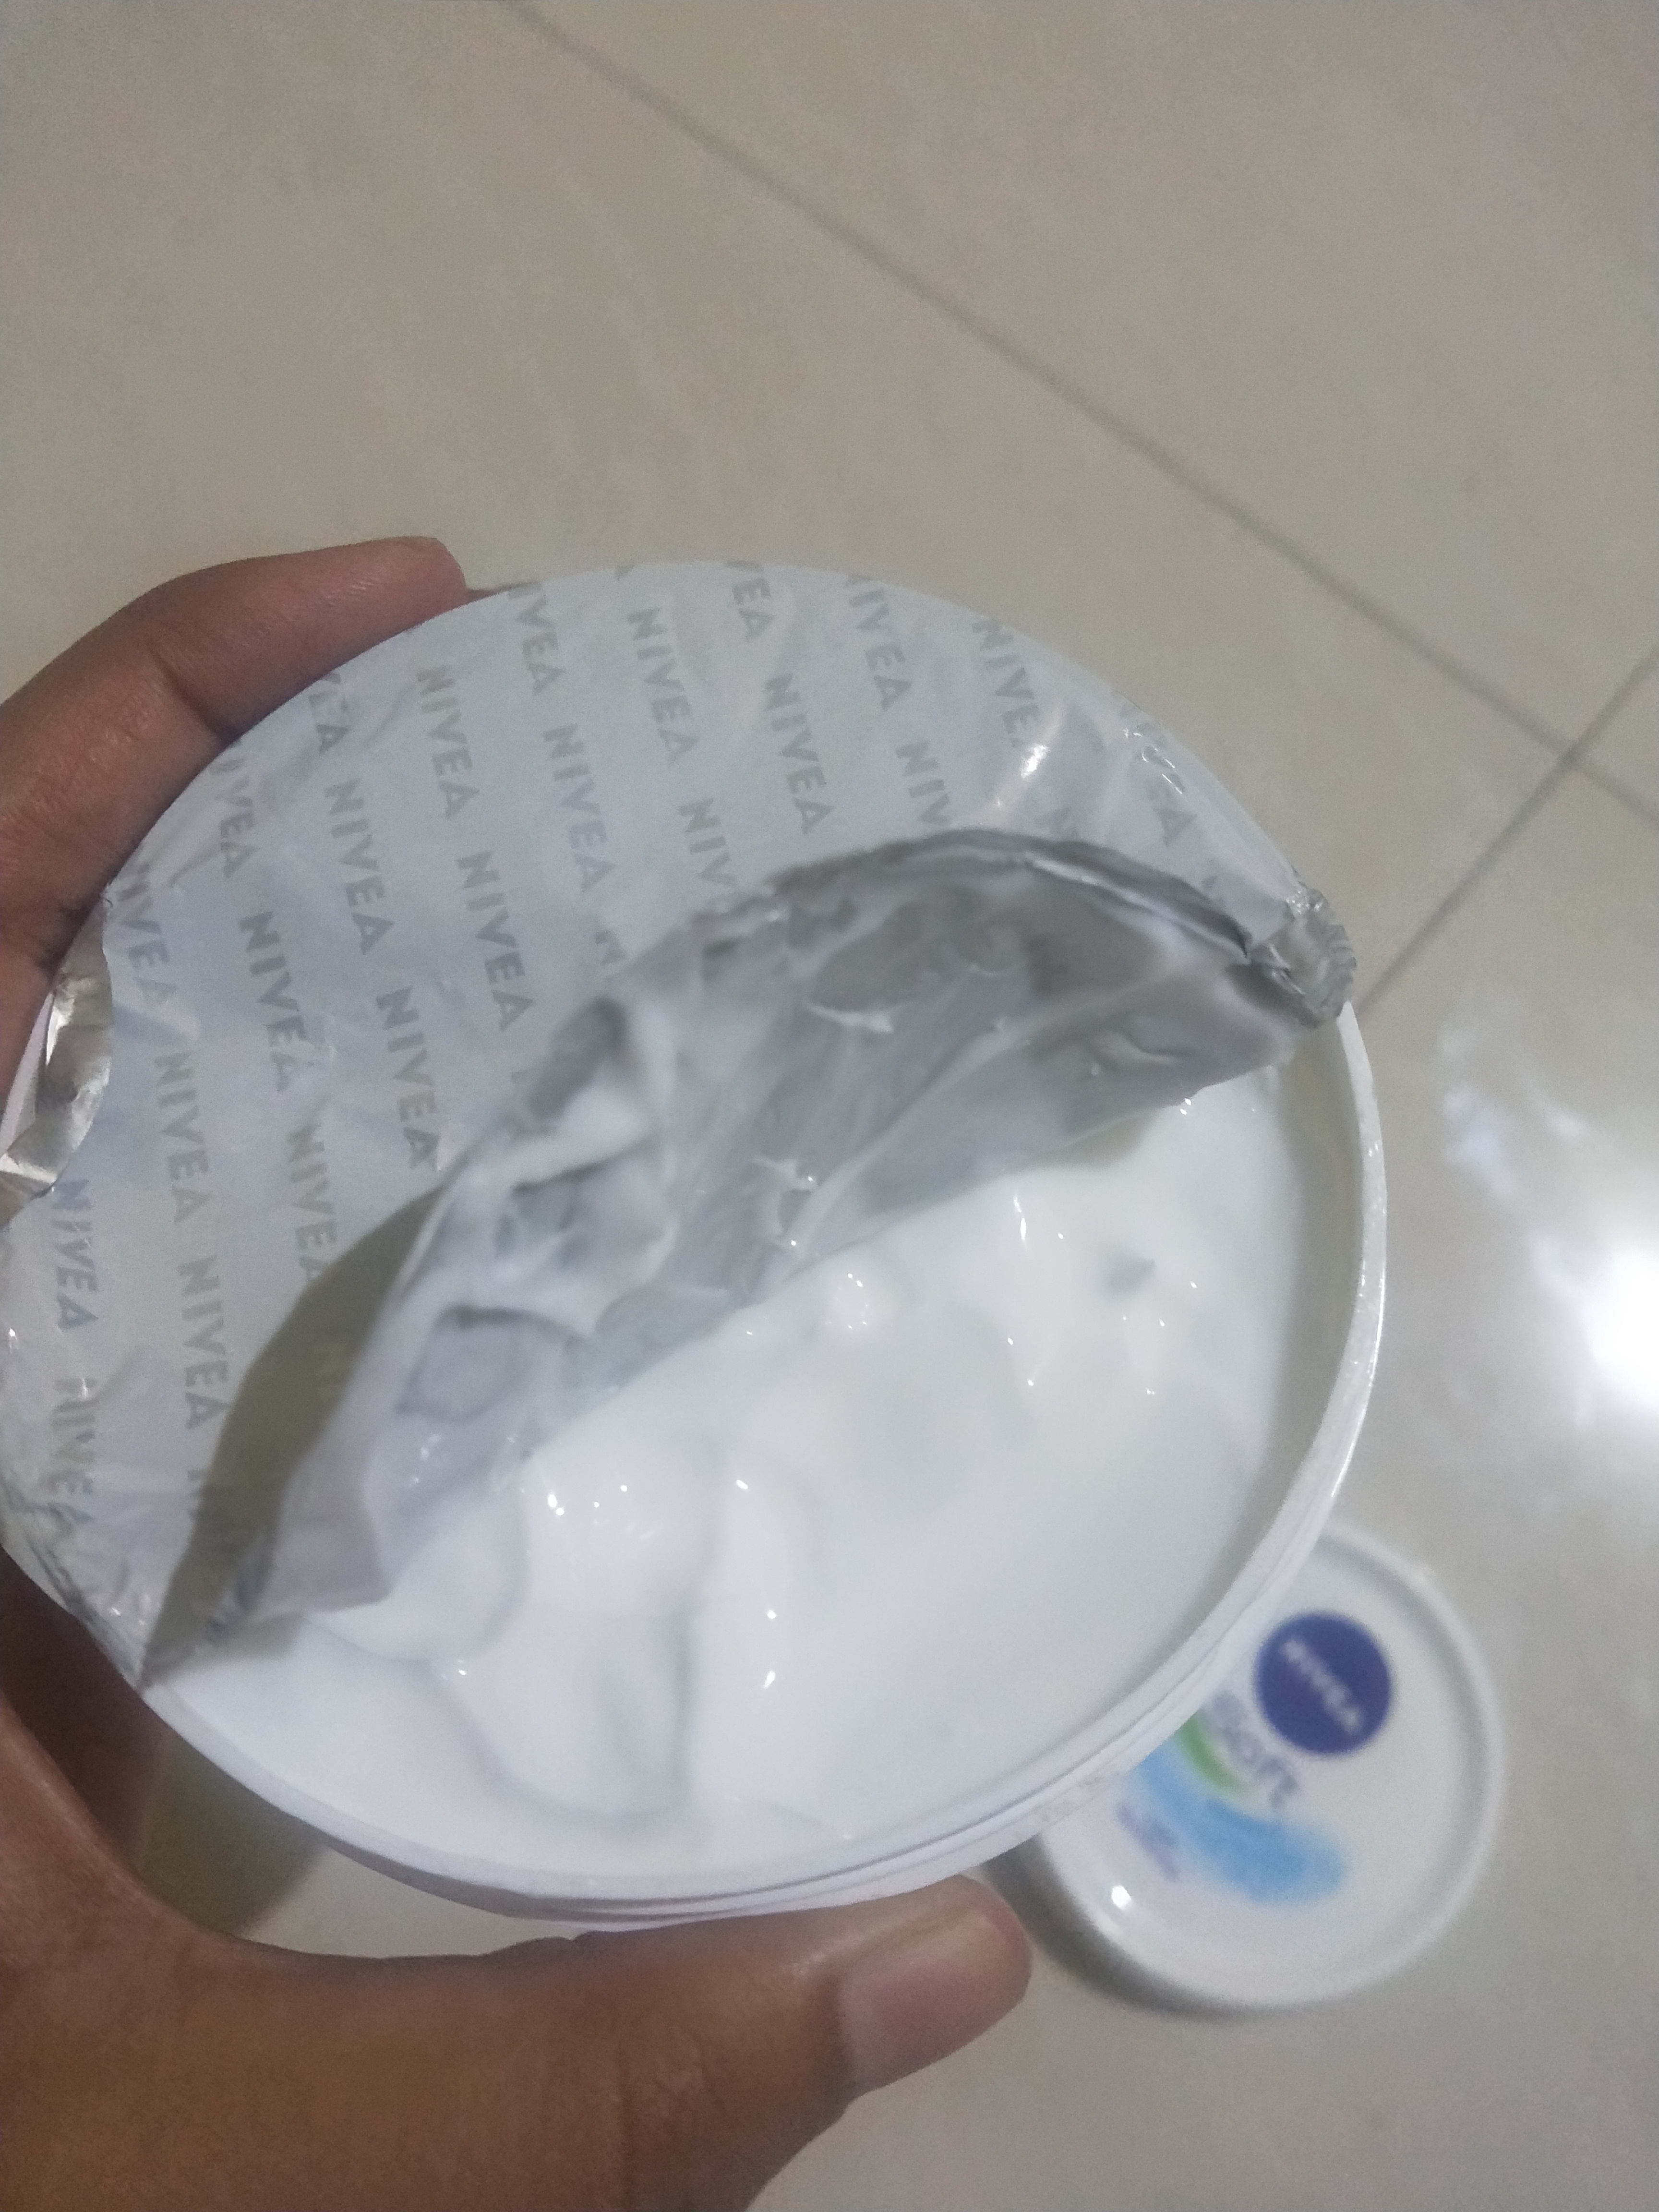 Nivea Soft Light Moisturiser-Light weight moisturizer, suitable for normal-dry skin-By miss_hungry_soul-4